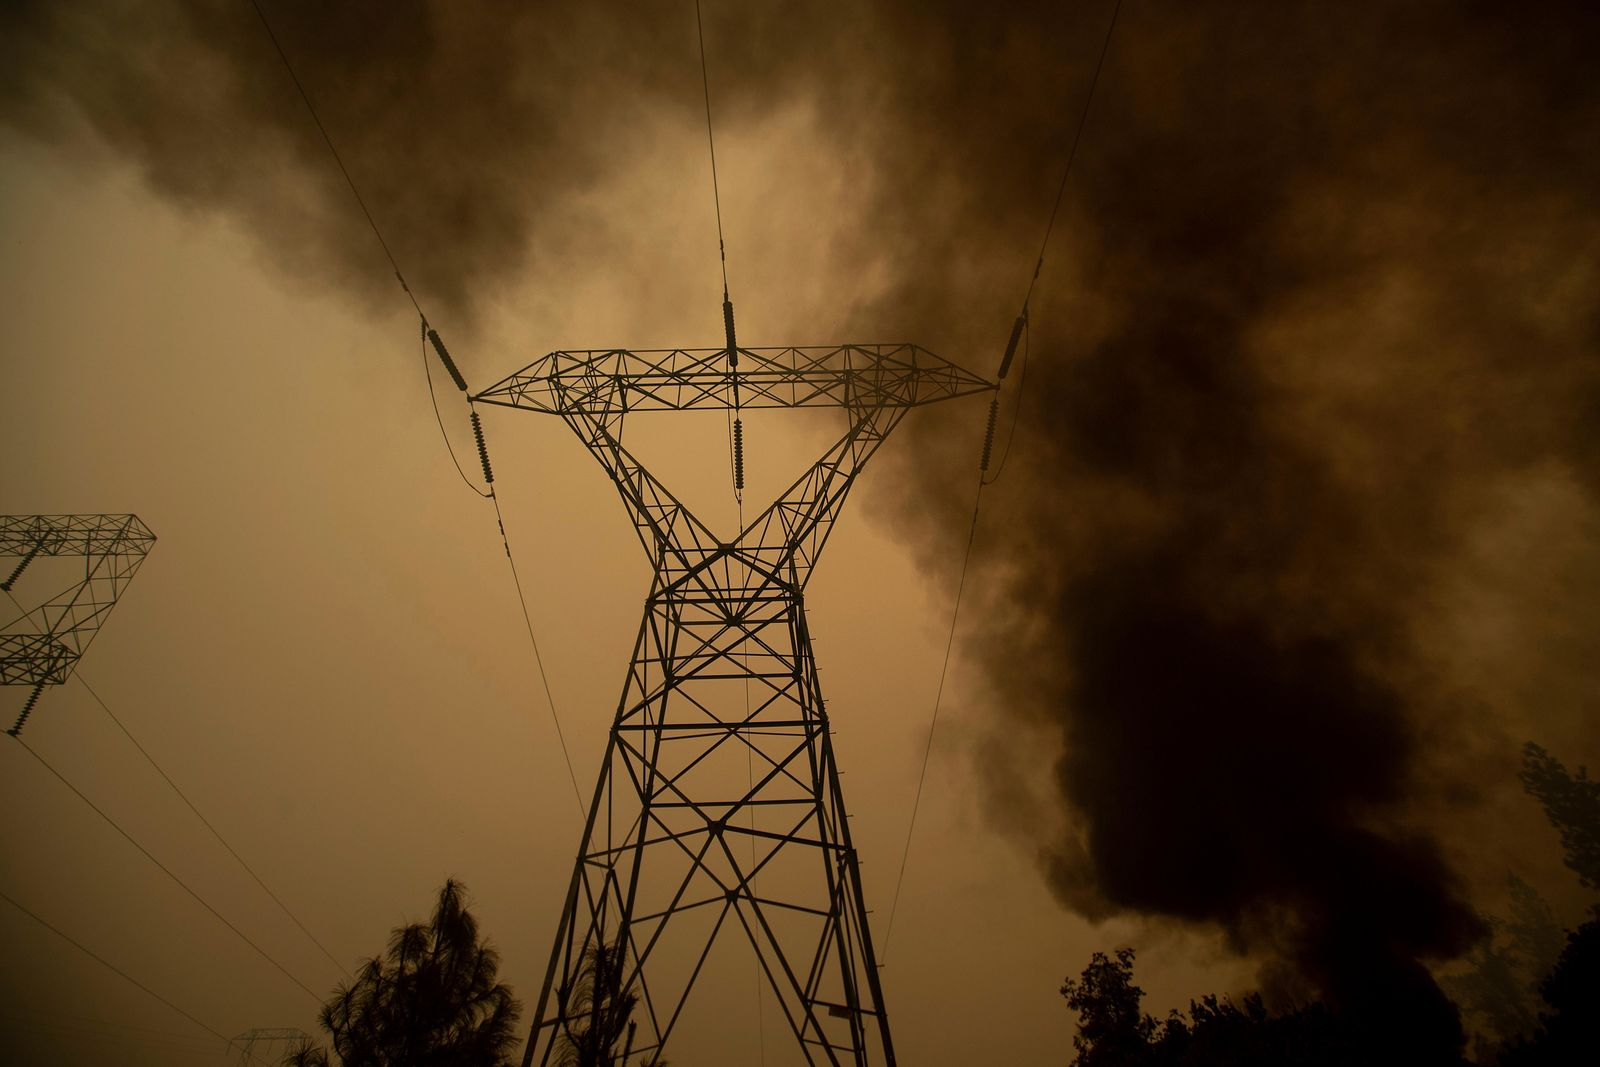 FILE - In this Nov. 9, 2018, file photo, smoke billows around power transmission lines as the Camp Fire burns in Big Bend, Calif. Experts say it's hard to know whether keeping millions of Californians in the dark prevented a catastrophic wildfire.{ } { }(AP Photo/Noah Berger, File)